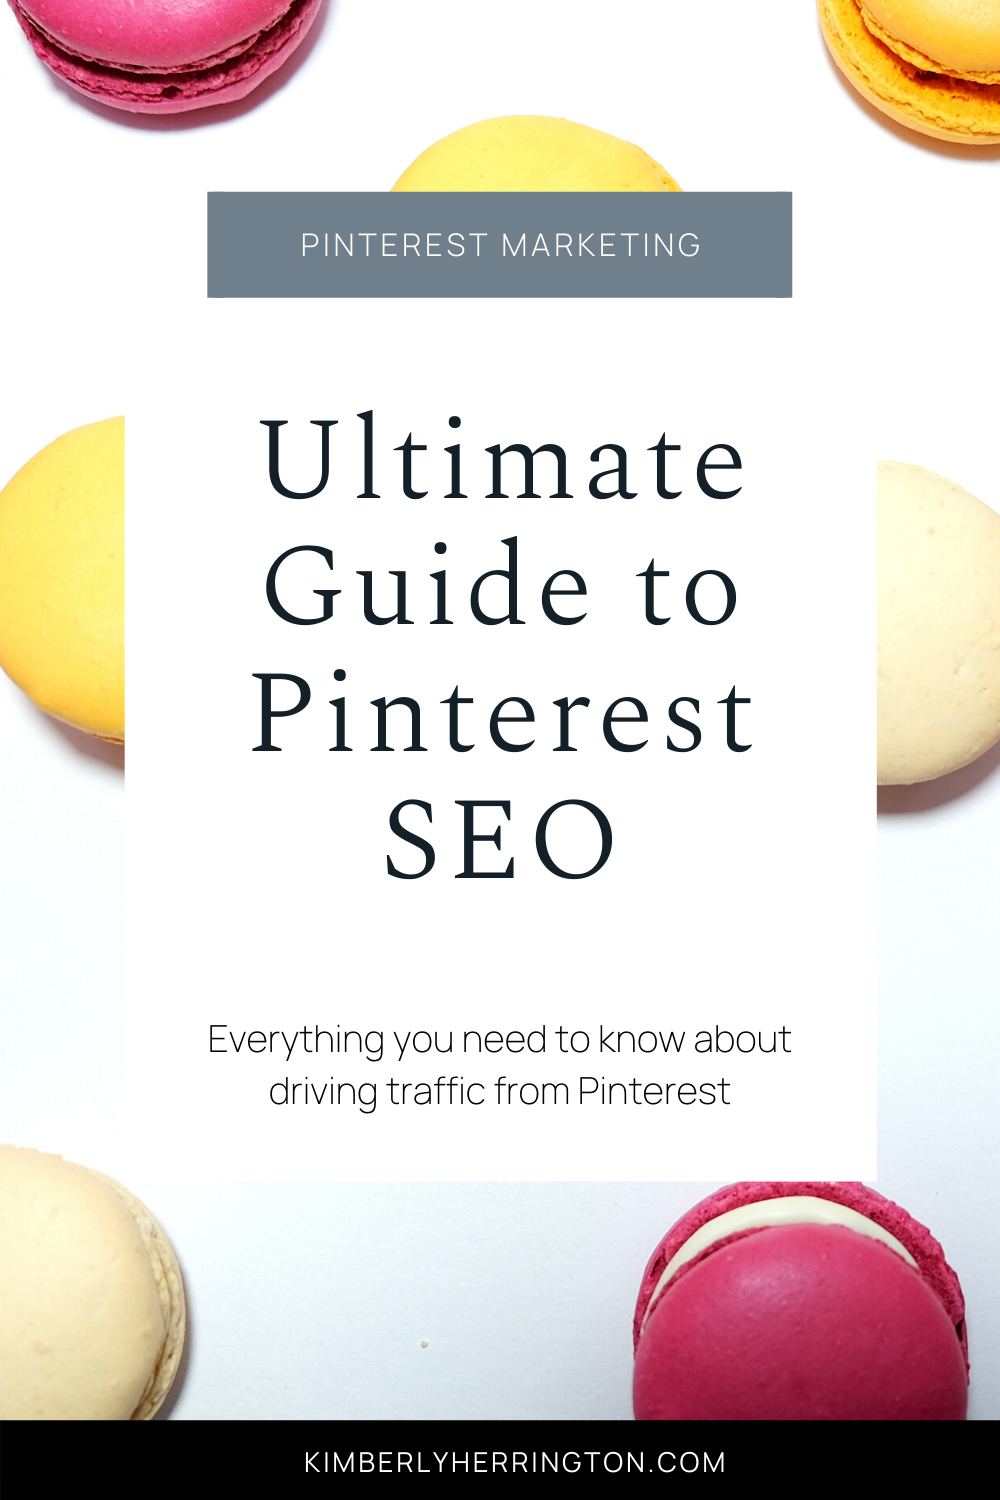 The Ultimate Guide to Pinterest SEO